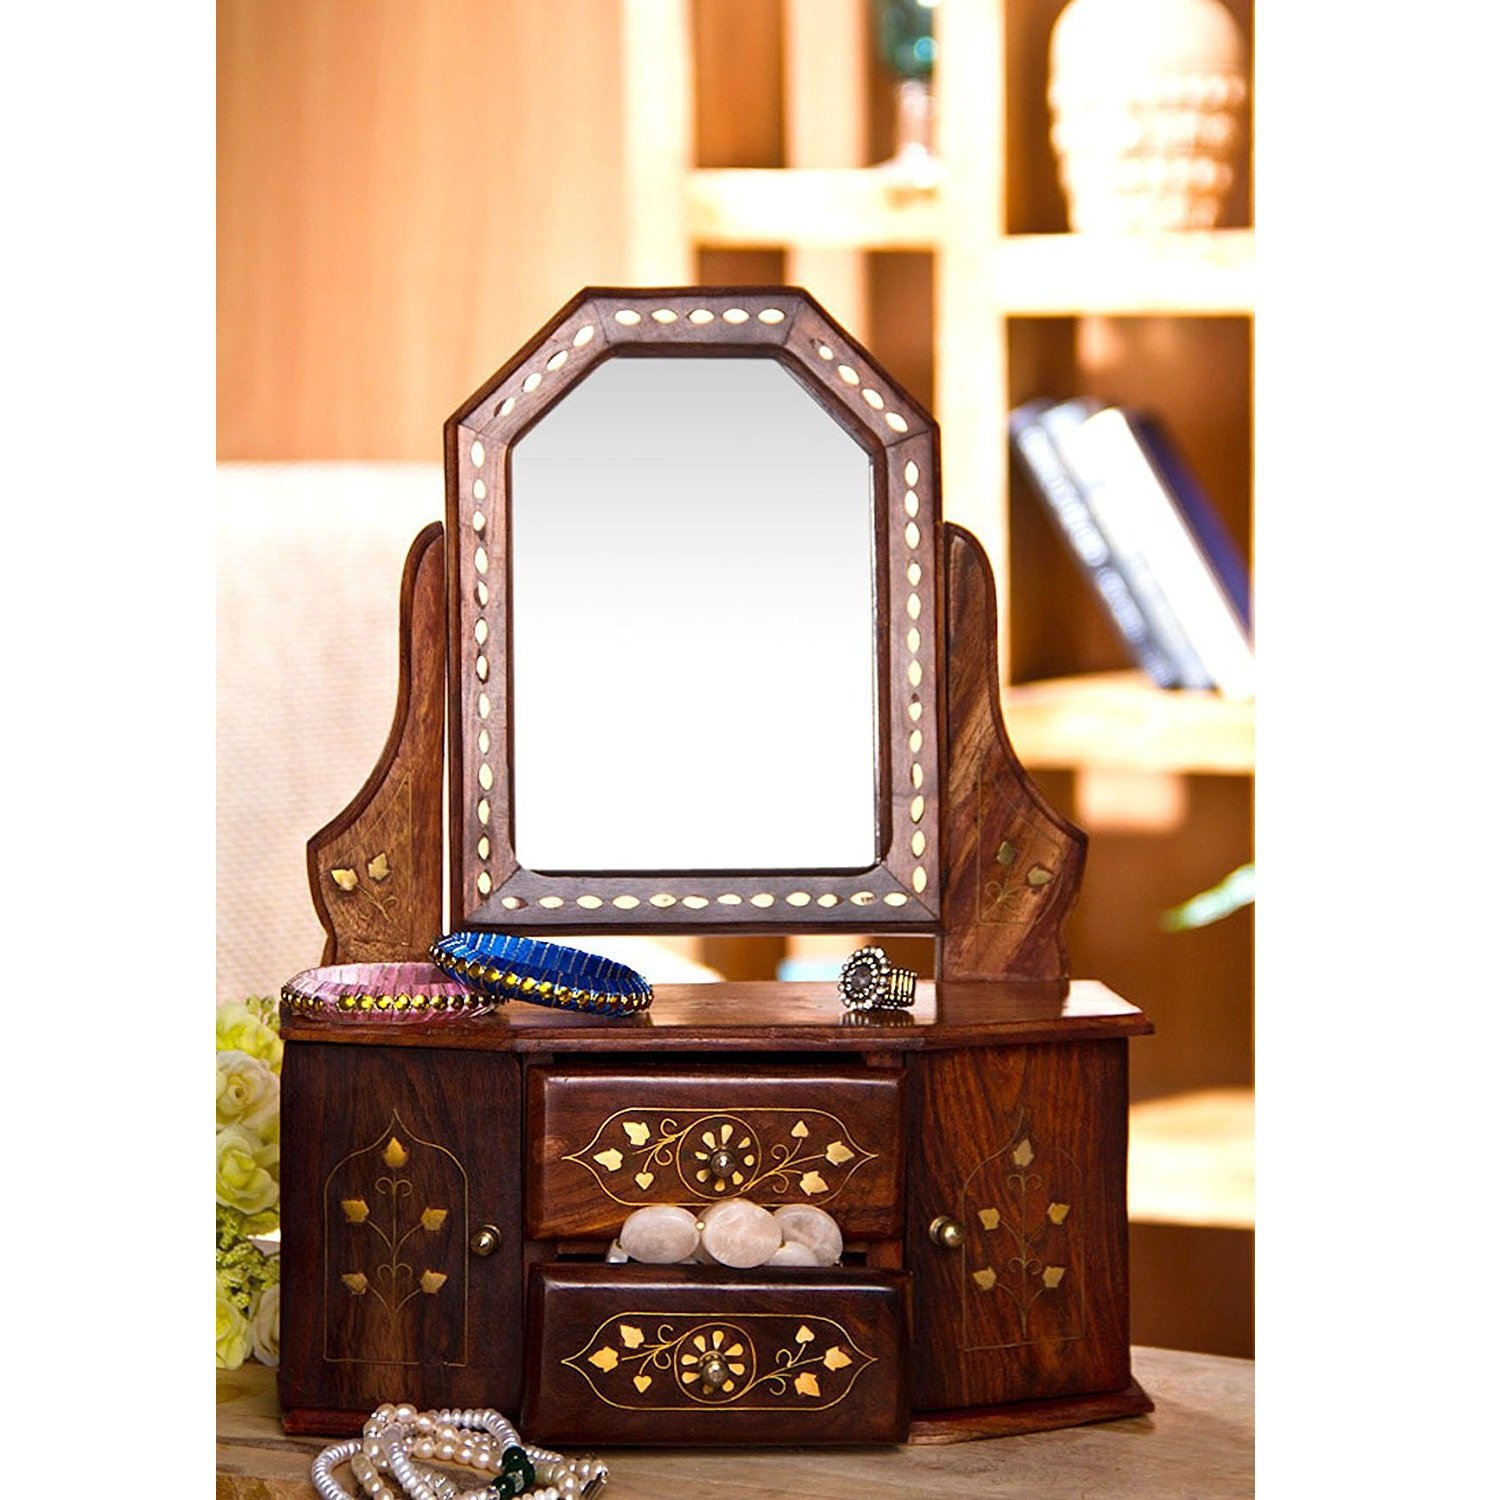 Uncategorized Buy Dressing Table With Mirror dressing table buy tables online at best prices in india desi karigar wooden small mirror frame home decorative and gifting item toy dressing